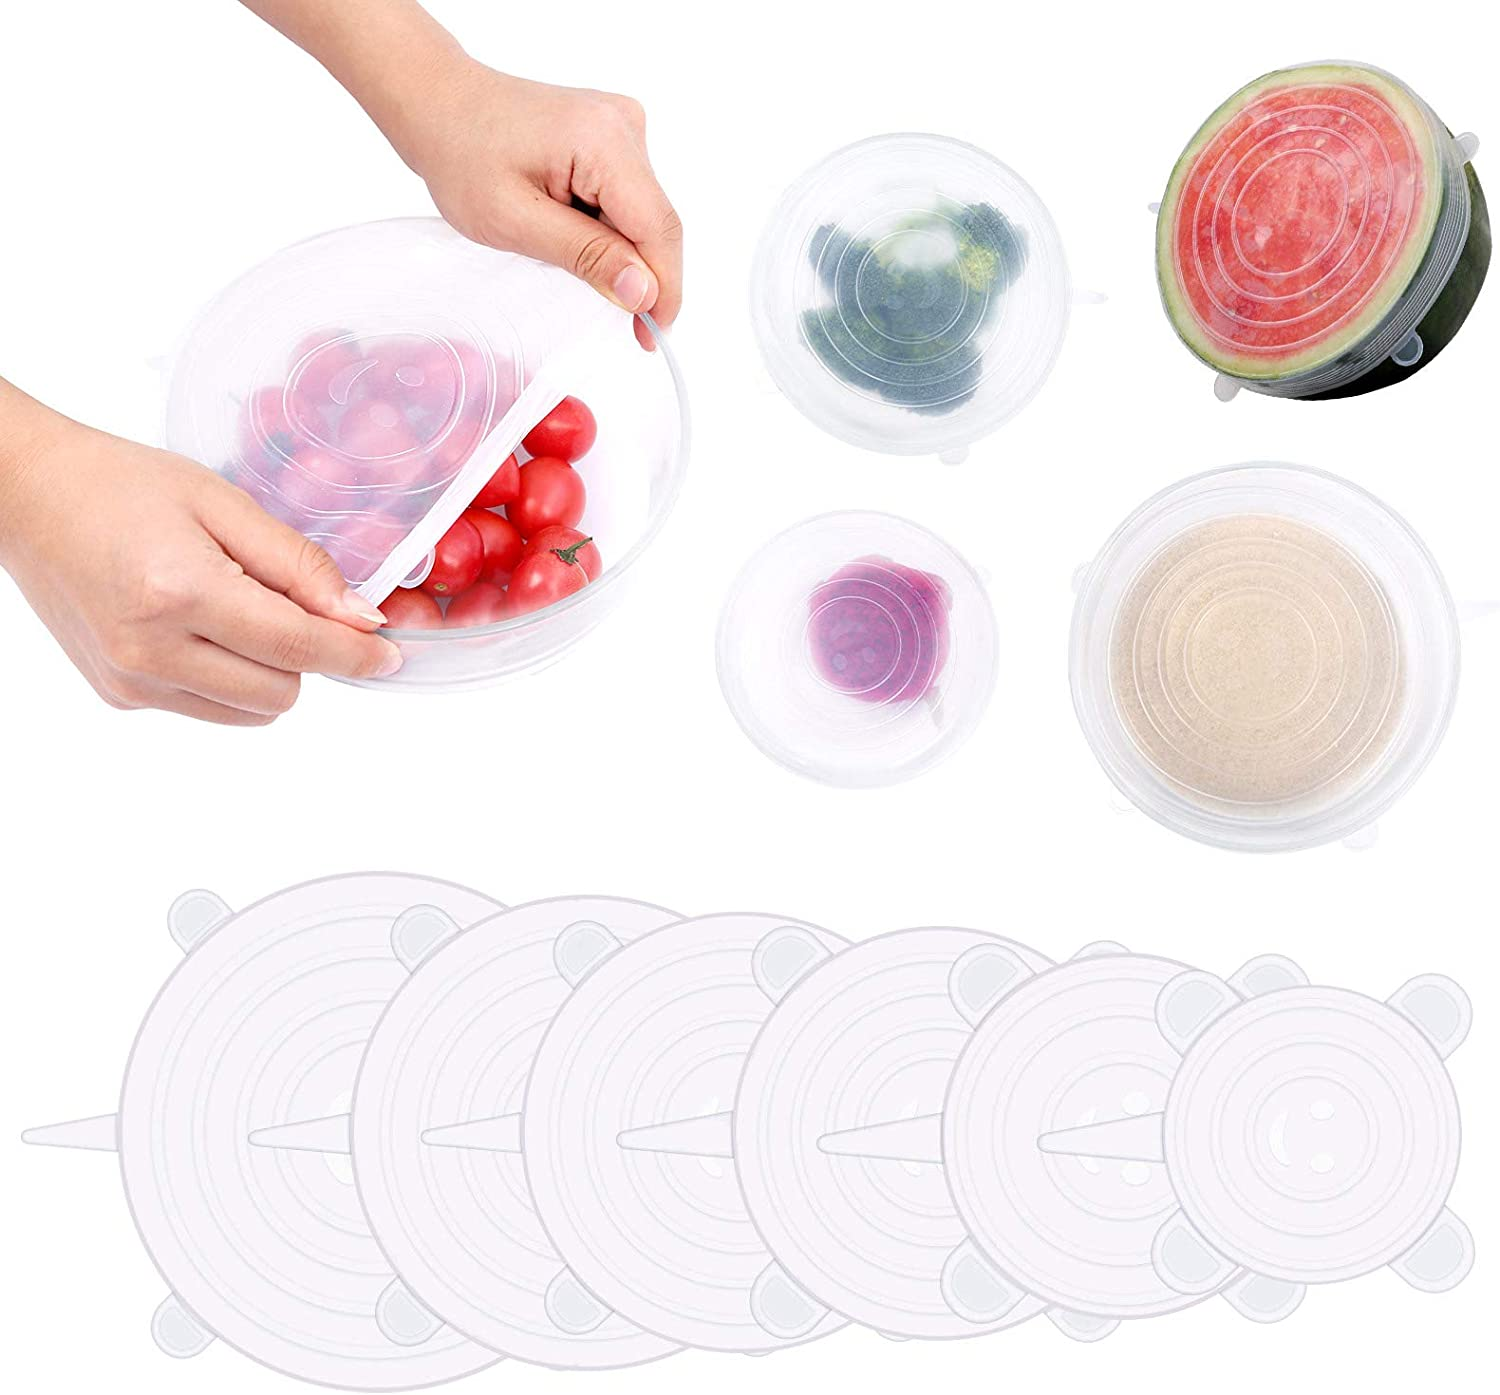 Silicone Stretch Lids Set of 6 Reusable Durable Food Storage Covers for Bowl 6 Sizes Silicone Covers Apply to Food Container for Freezer & Microwave